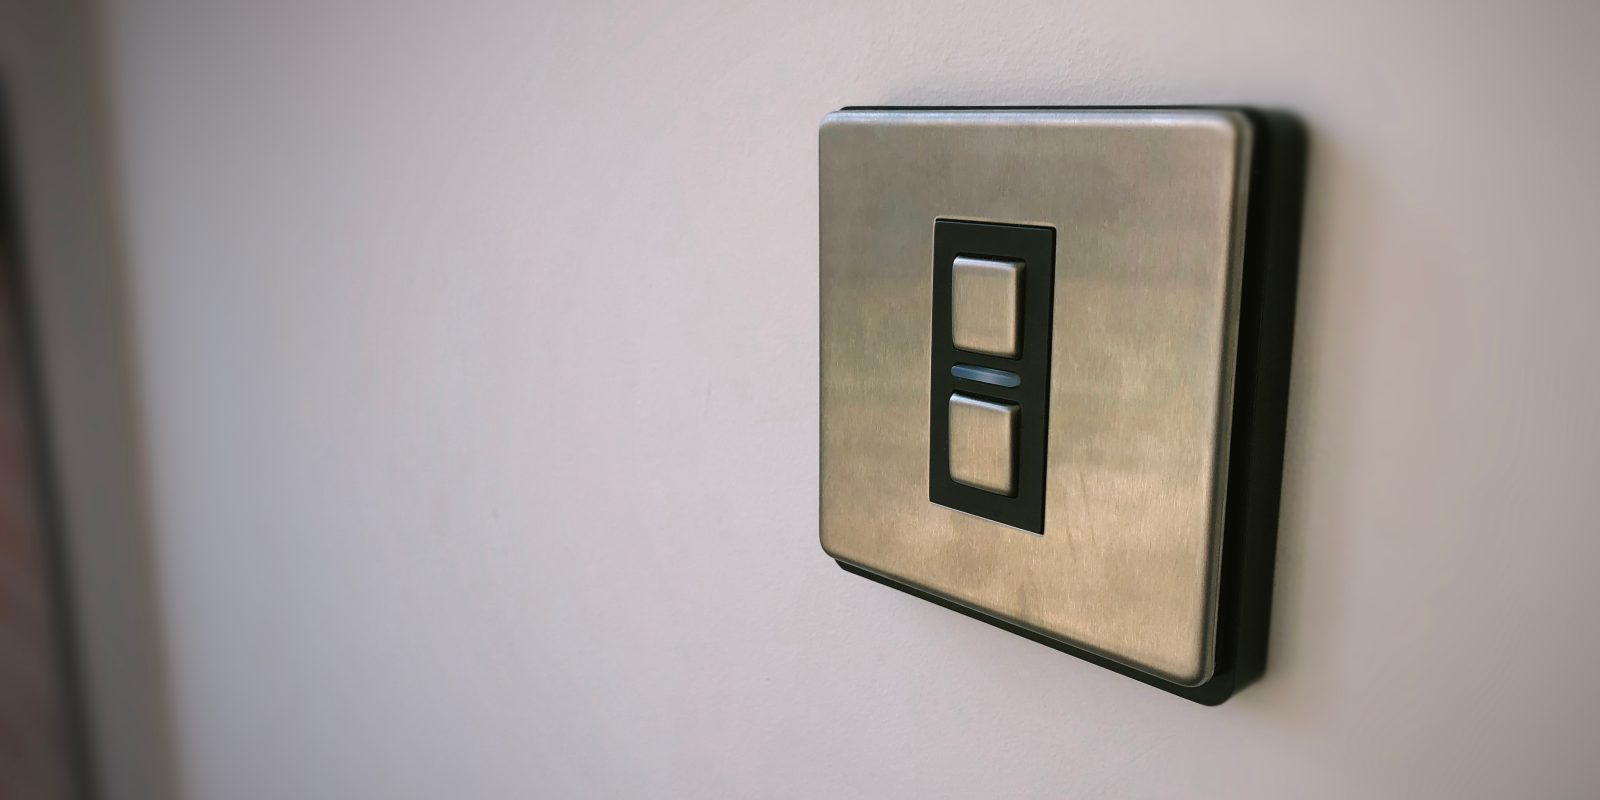 hight resolution of review lightwave light switch the best uk homekit solution for smart lighting